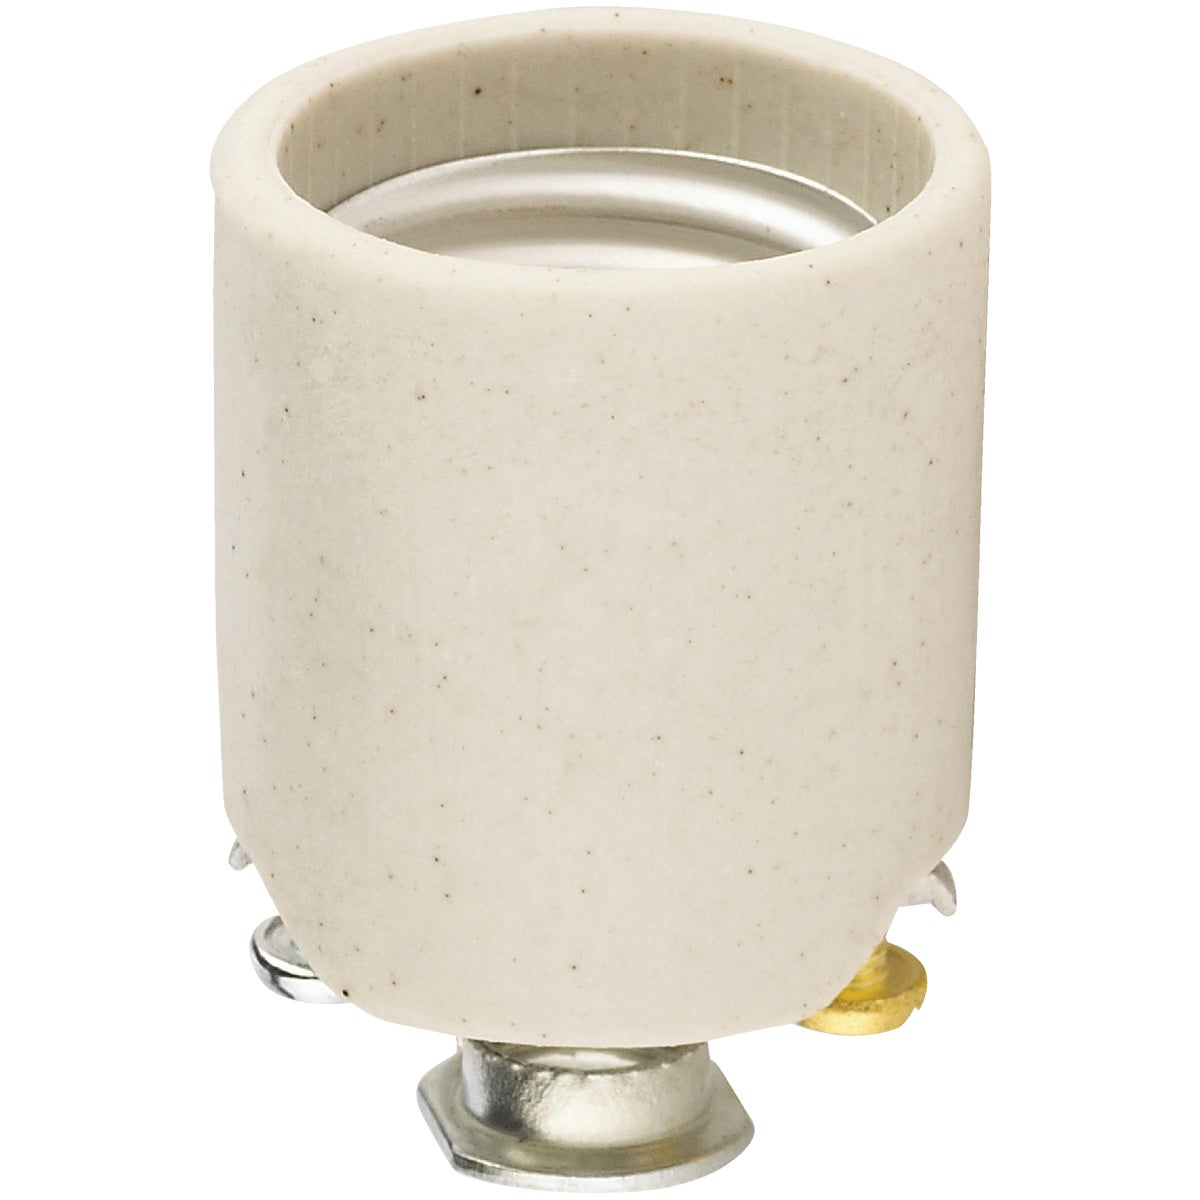 PORCELAIN LAMPHOLDER - 3152-8 by Leviton Mfg Co